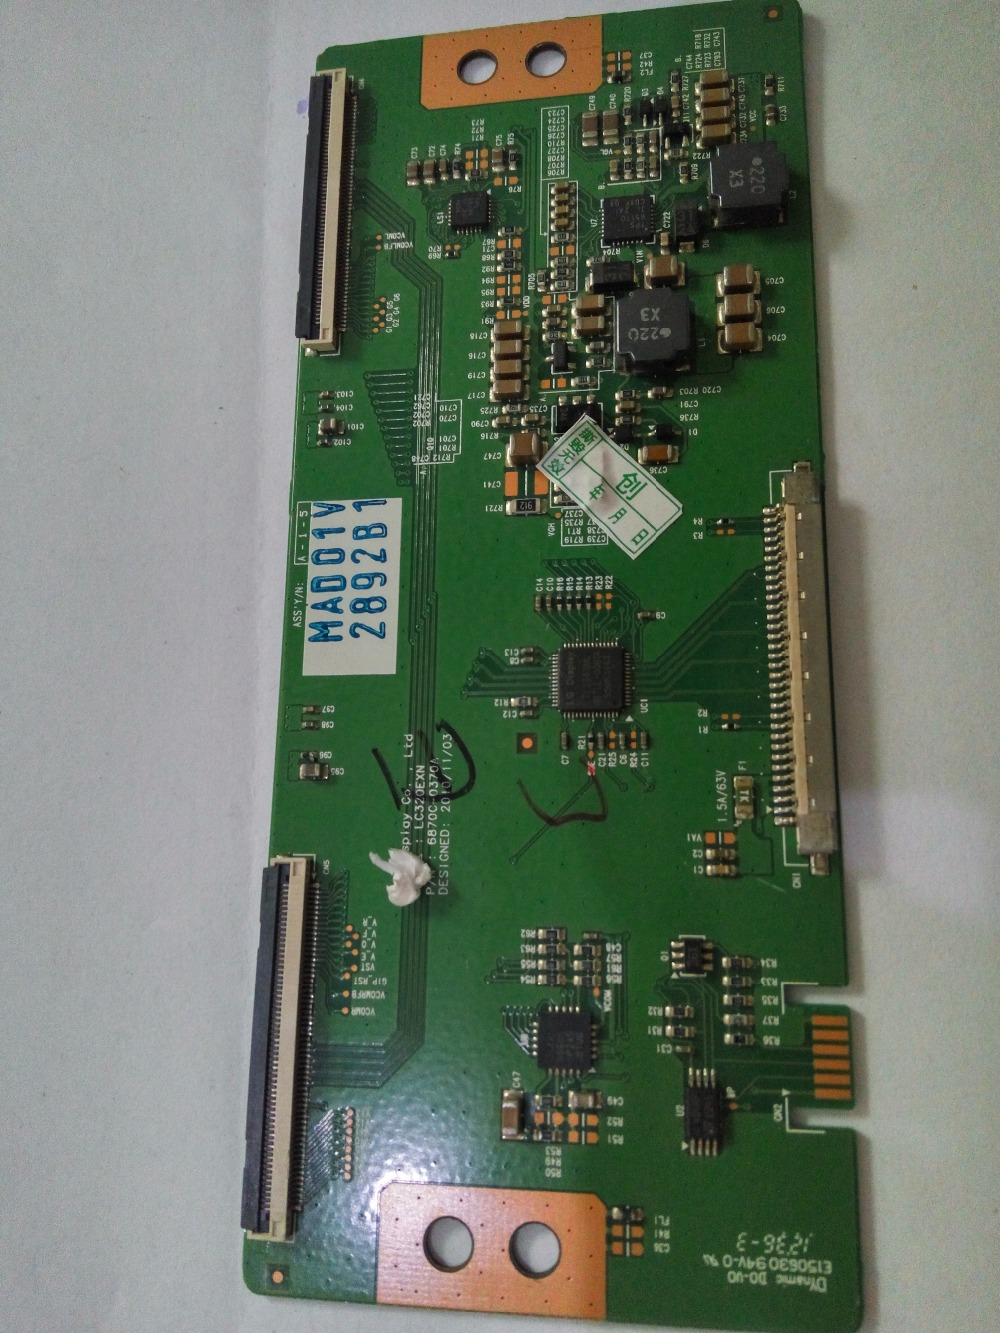 Lc320exn-sea1-k31 Logic Board 6870c-0370a Connect With T-CON Connect Board